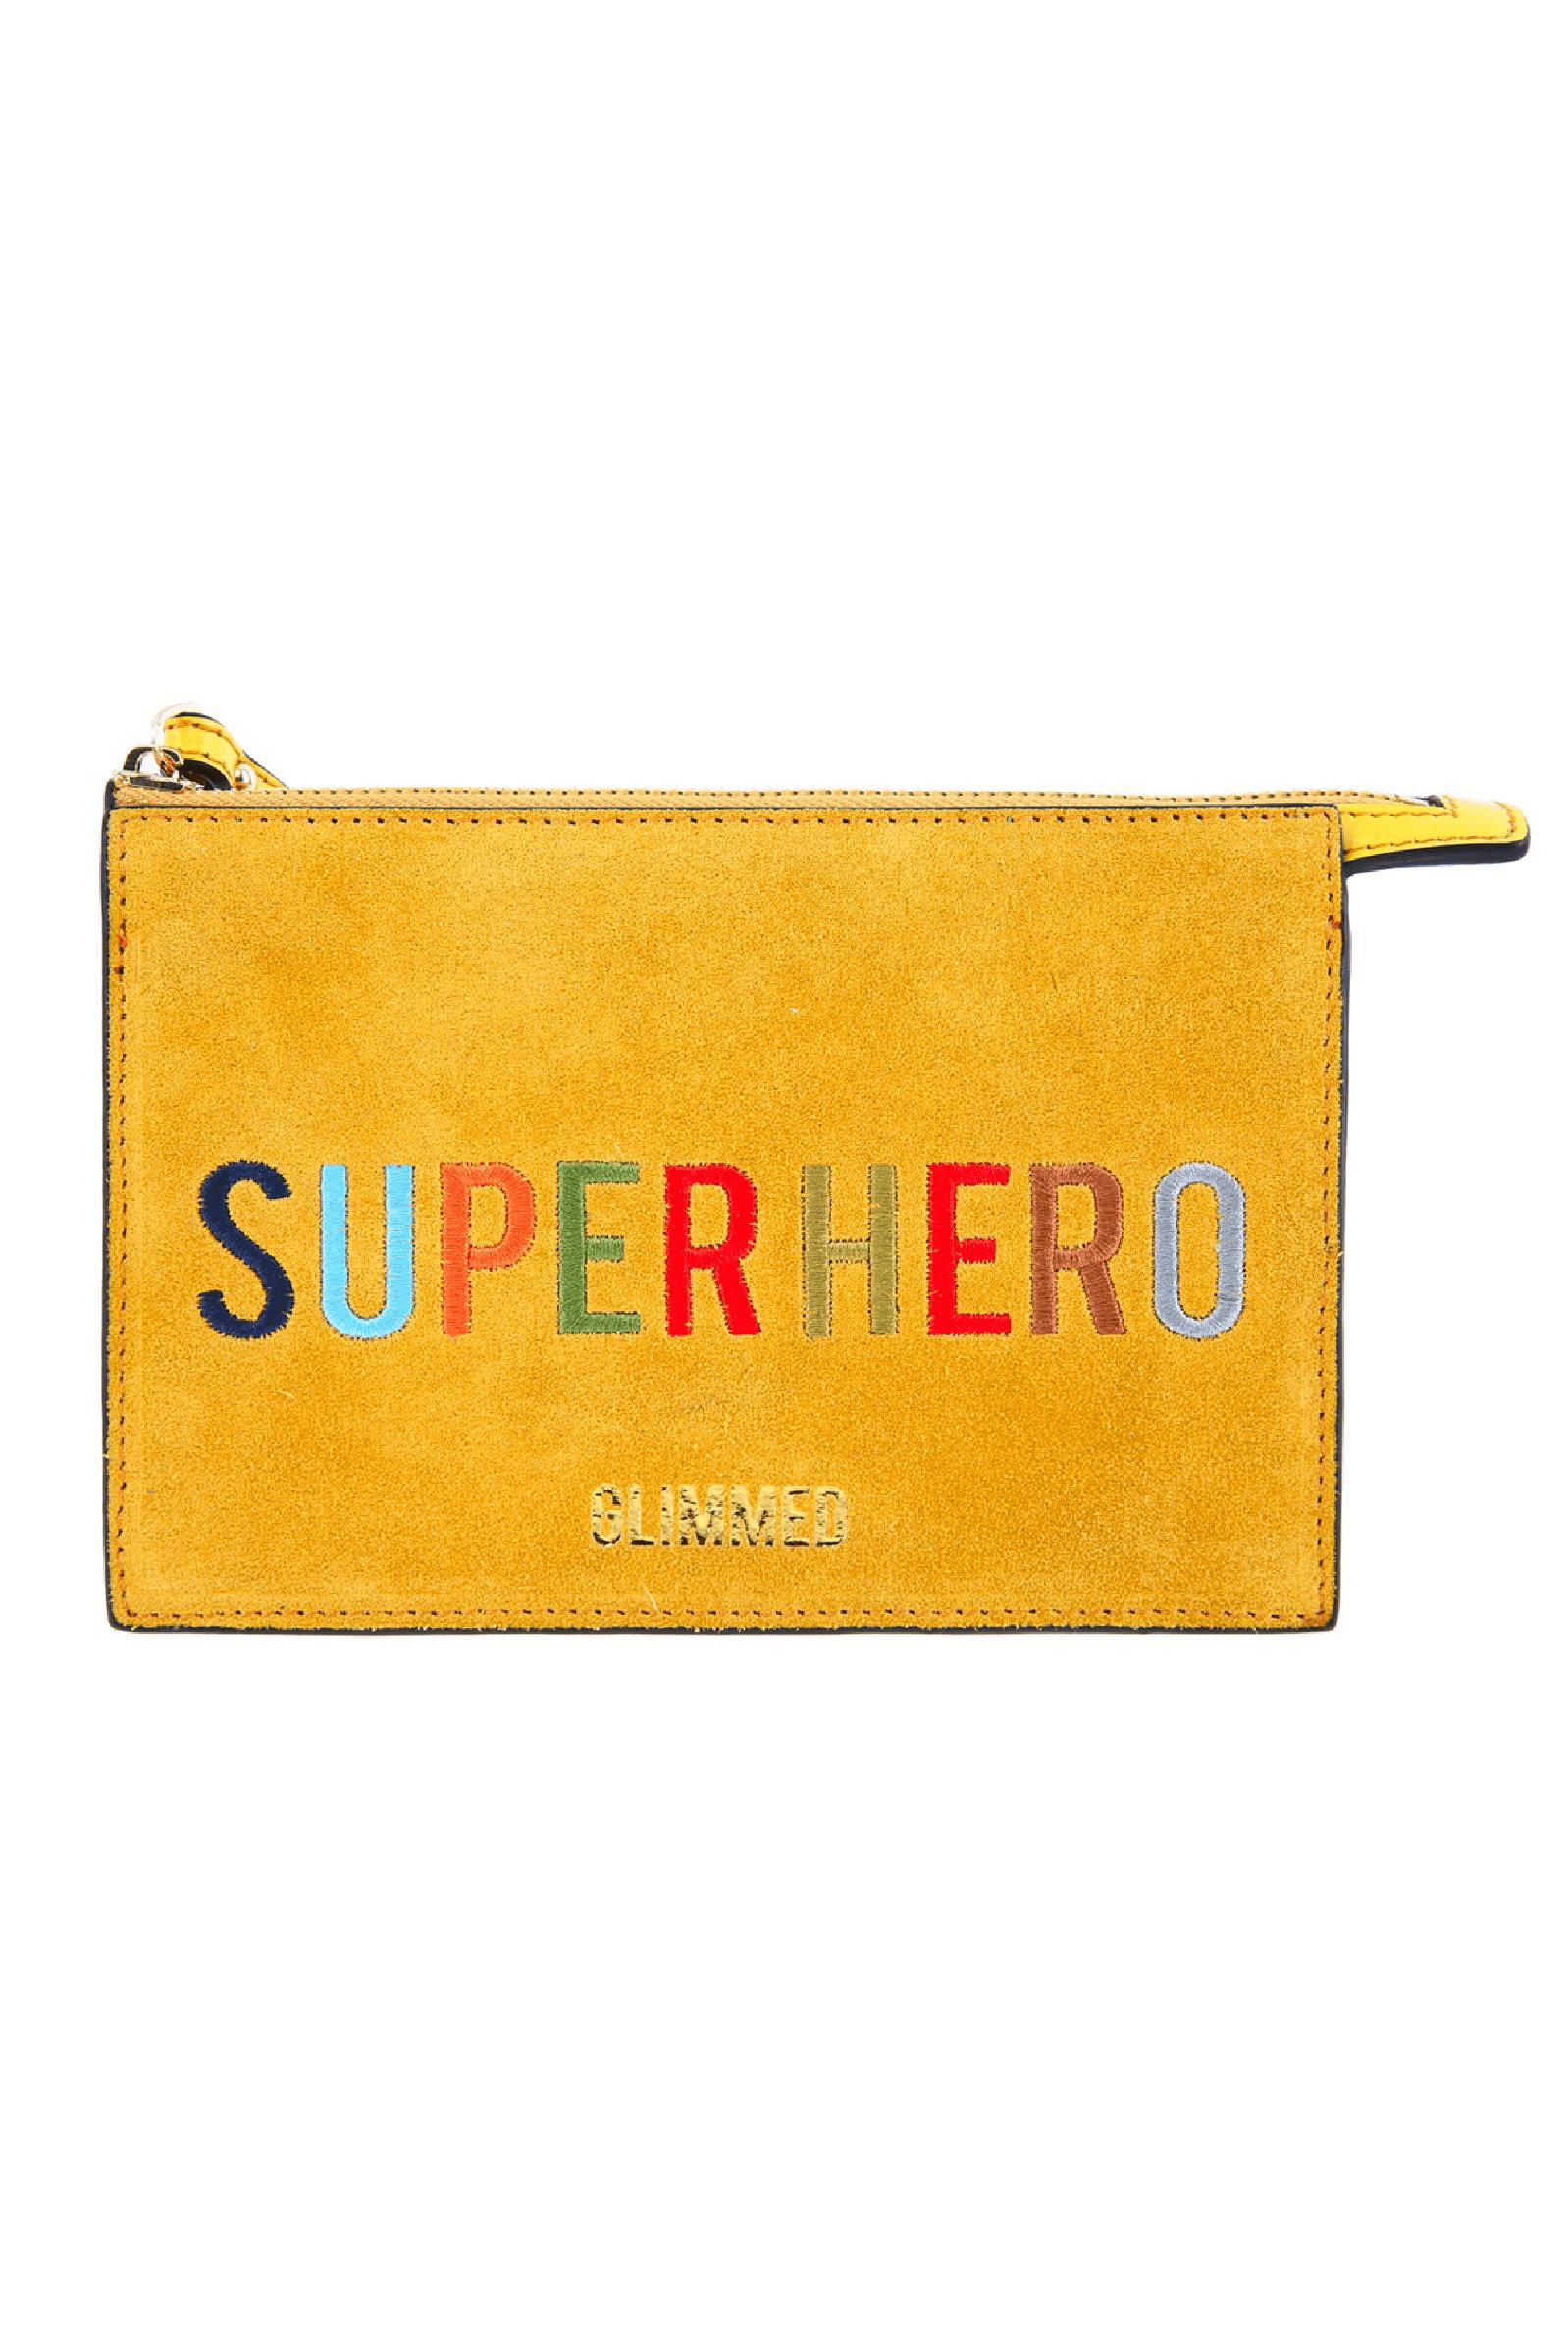 Super Heroes Leather Clutch - The Bobby Boga